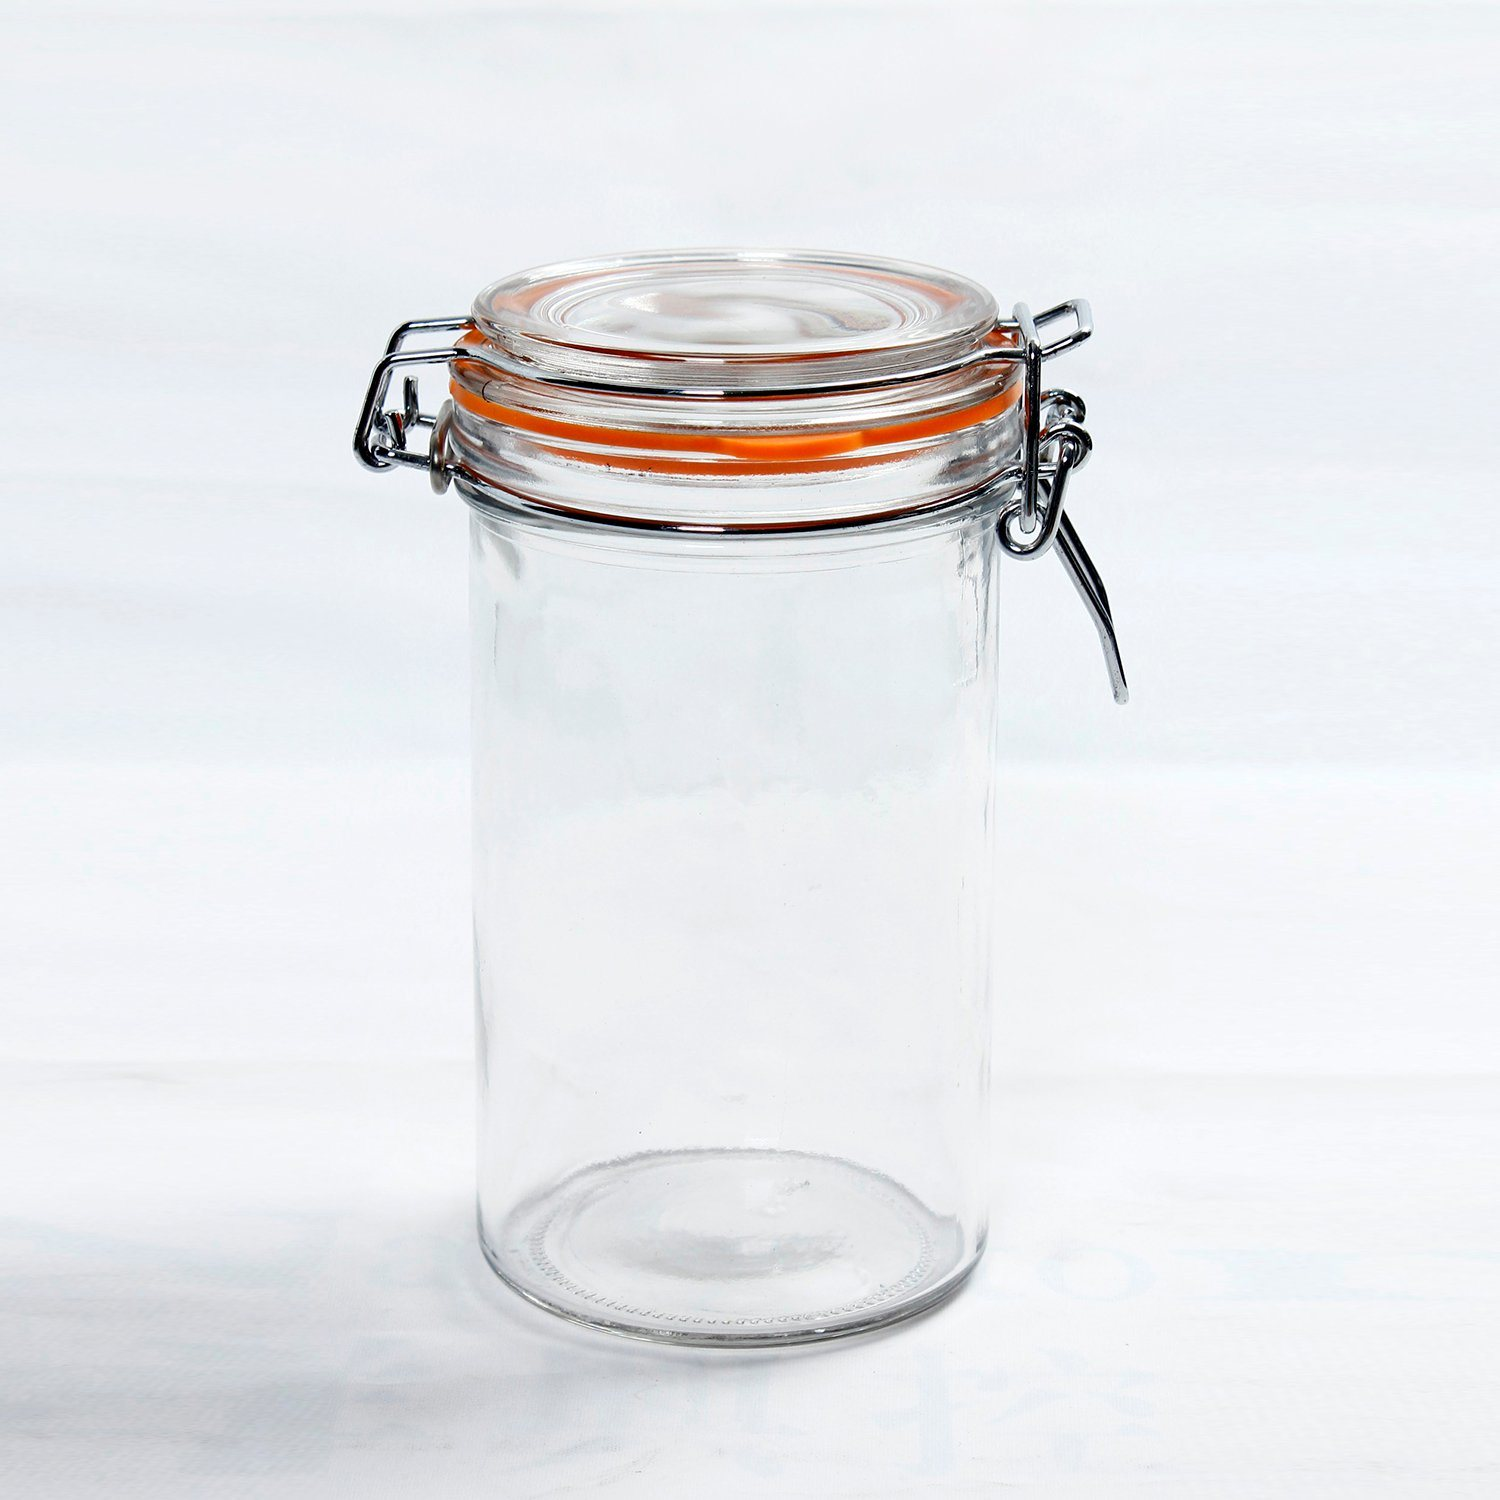 4.4oz 7.0oz 8.8oz 14.1oz Small Glass Jar Storage Glassbottle